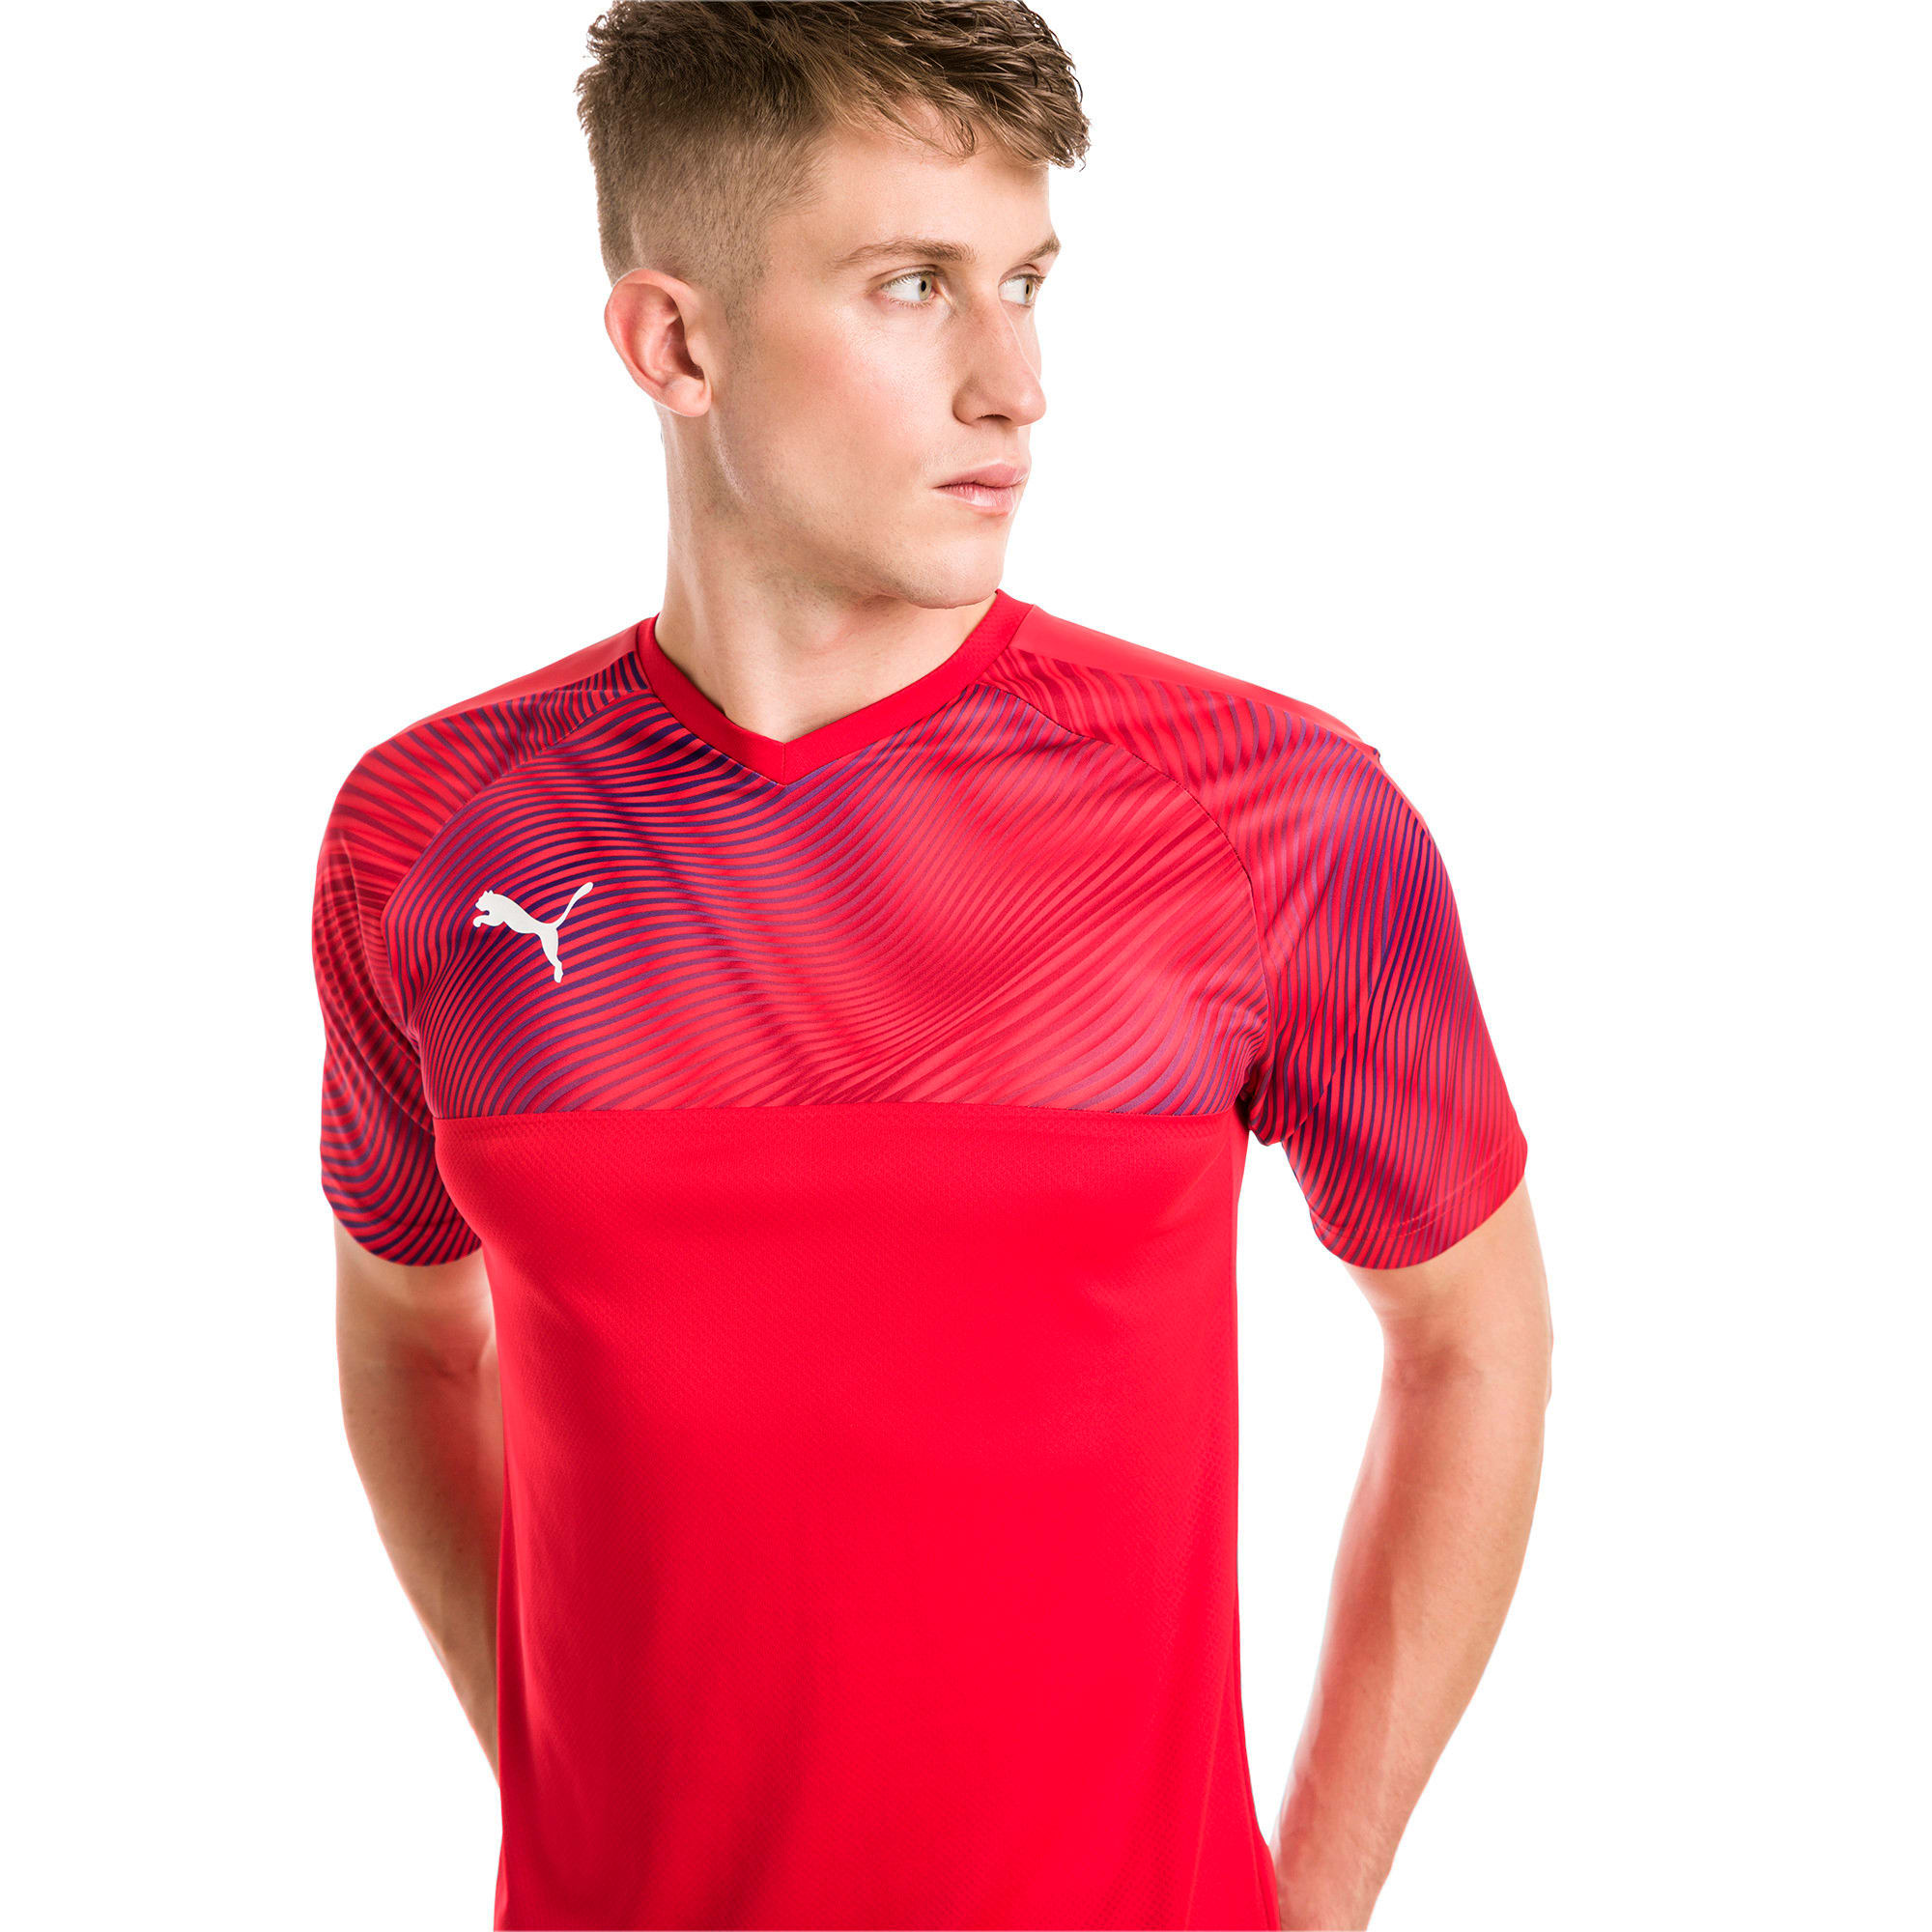 Thumbnail 1 of CUP Men's Football Jersey, Puma Red-Puma White, medium